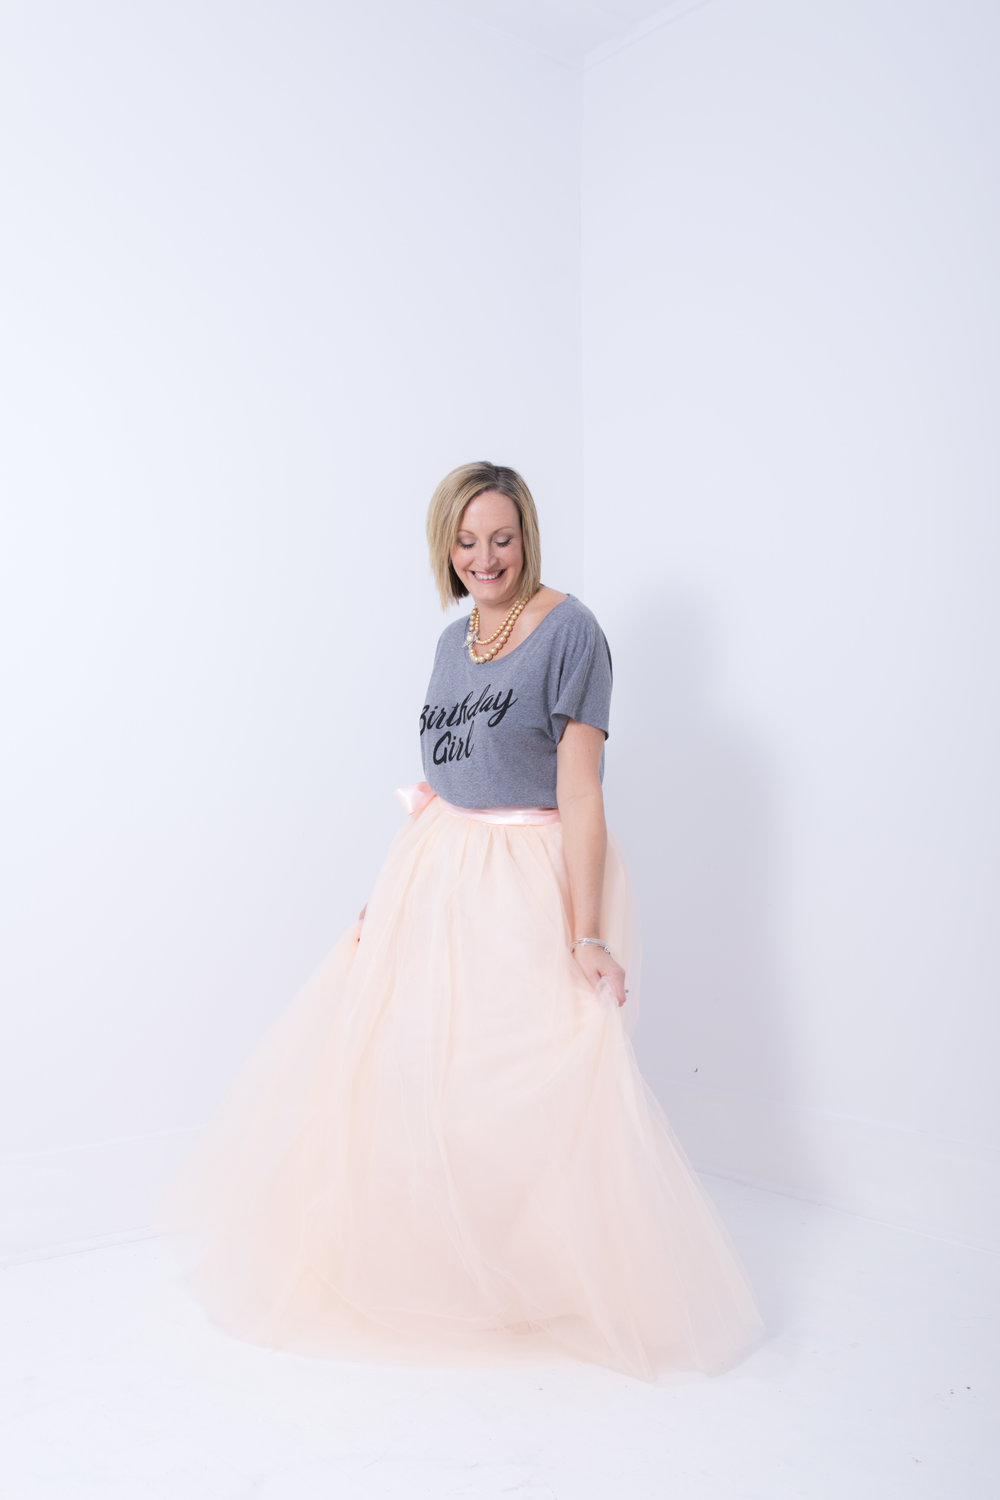 Celebrating 40! - Wine, cake, tulle skirt, birthday girl t-shirt... and the best of friends that surprised Jocelyn with it all!